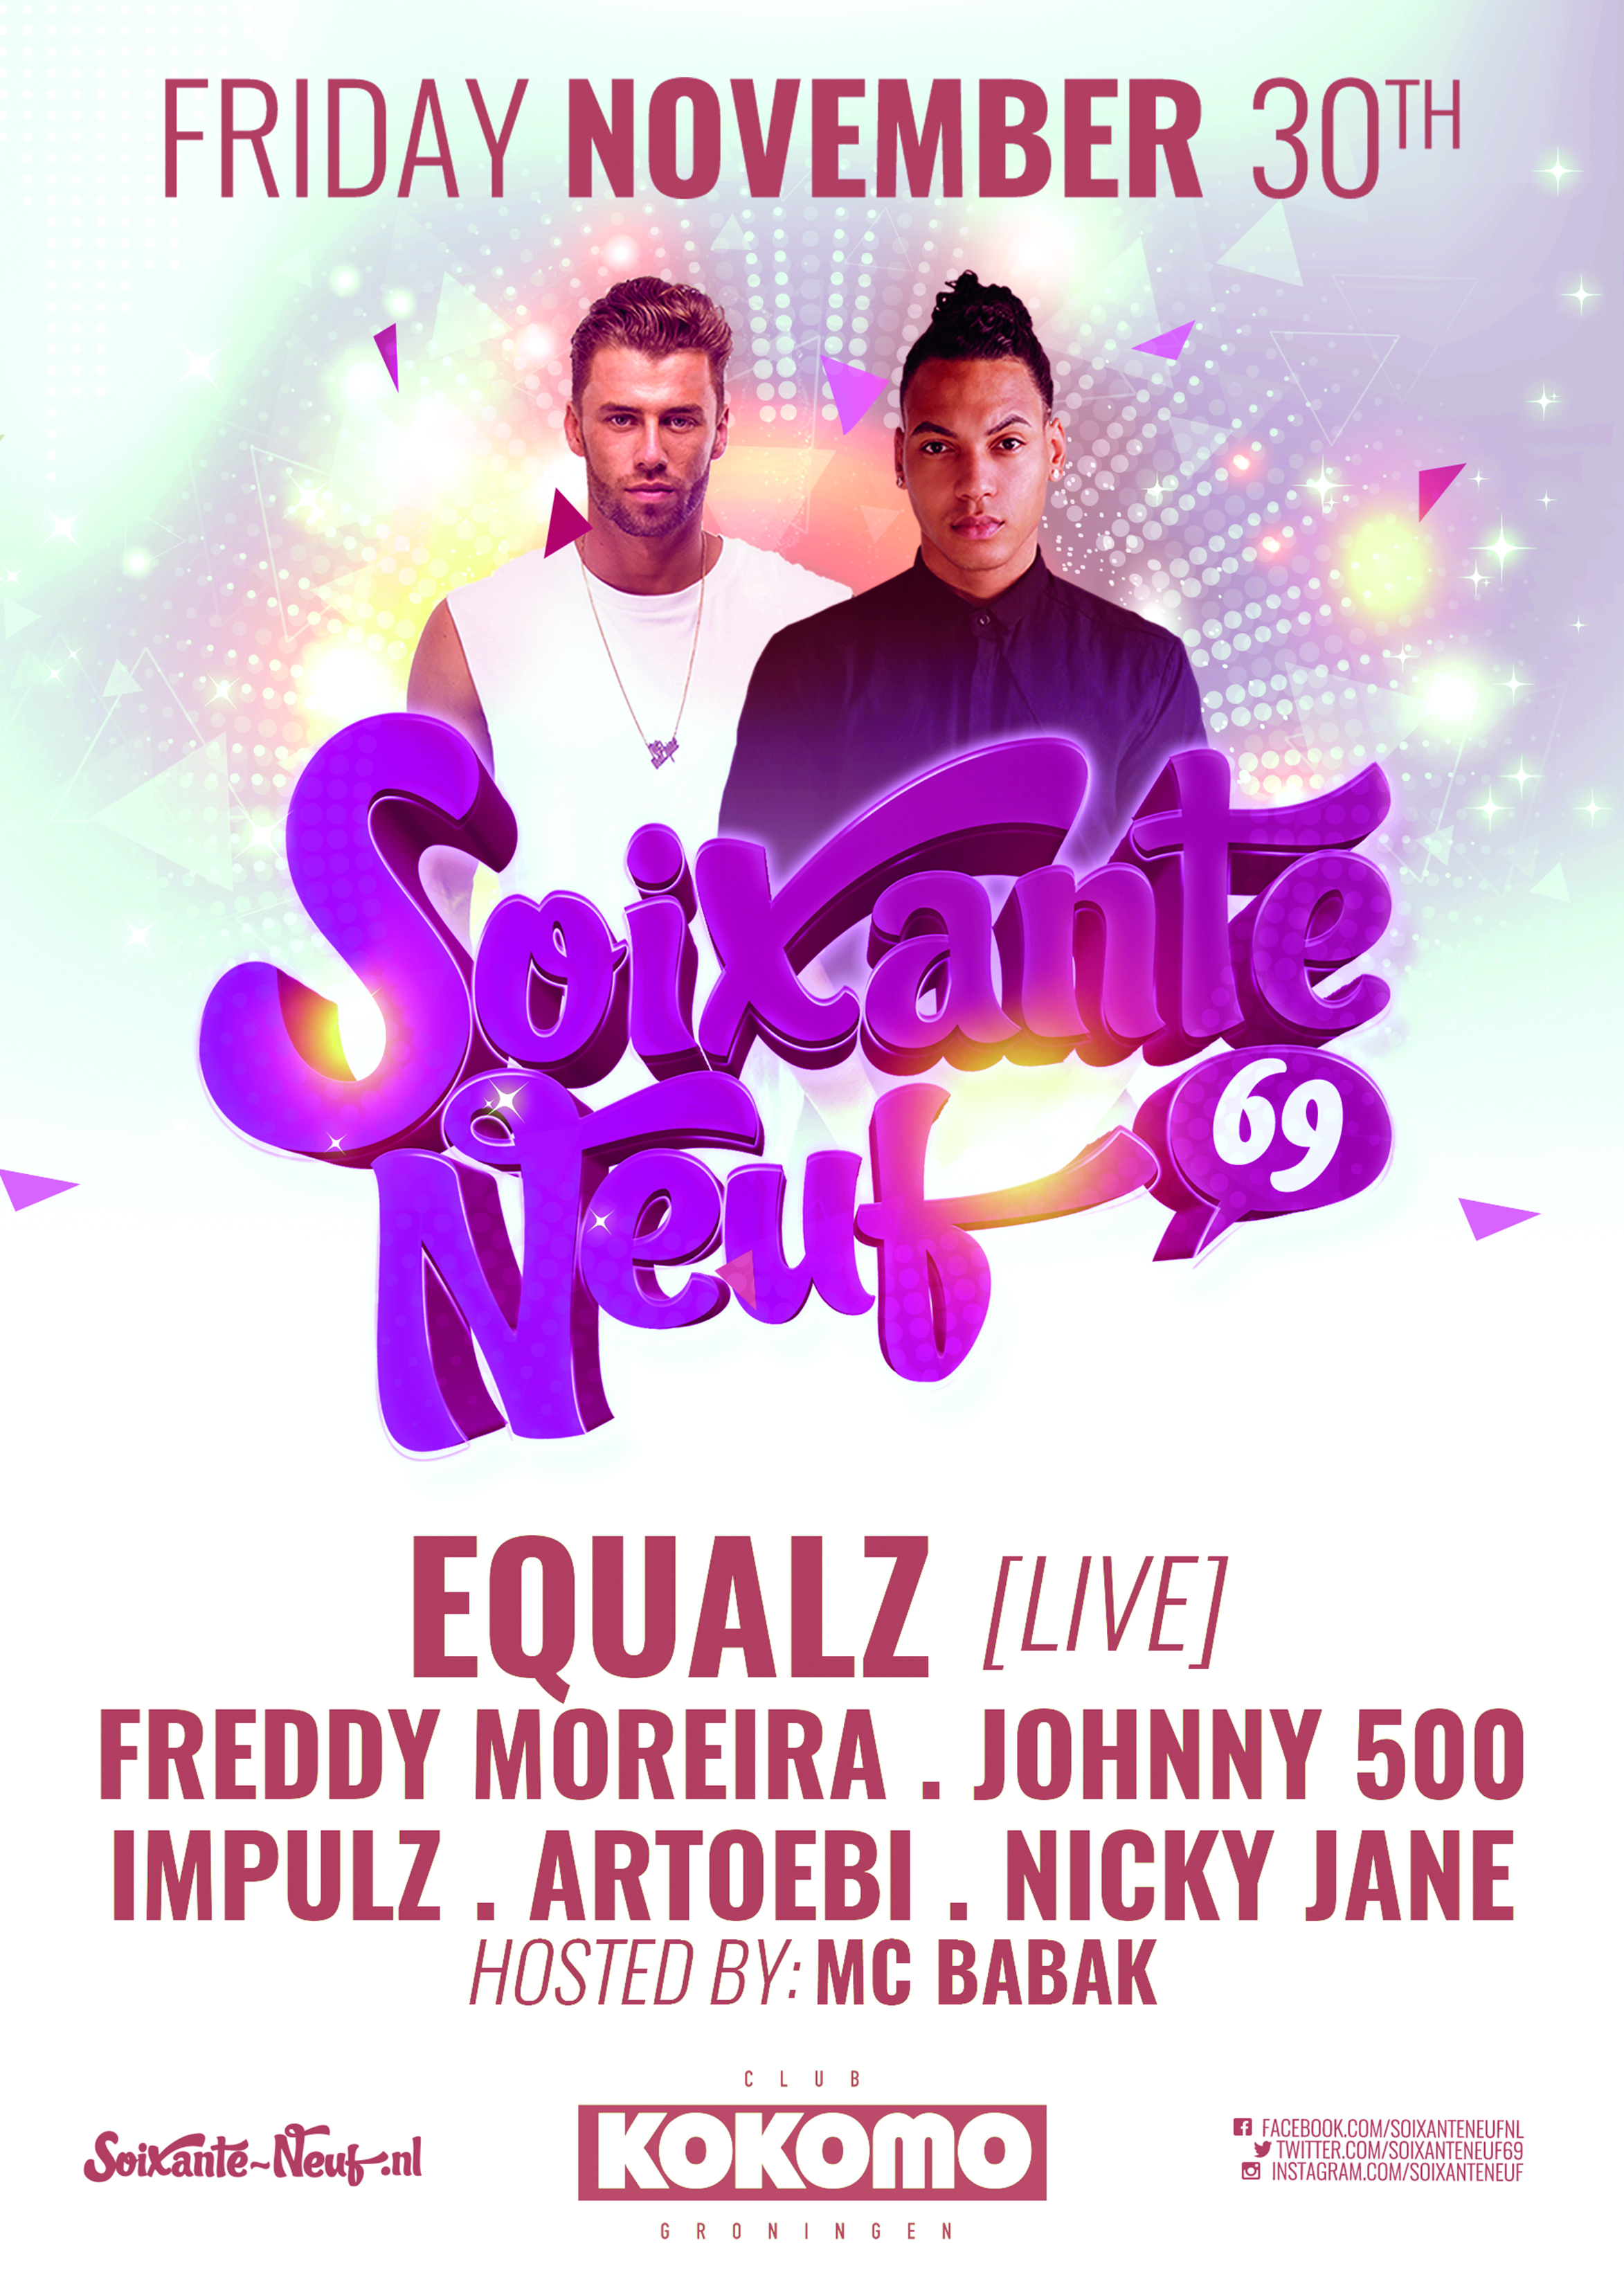 SOIXANTE NEUF x EQUALZ, FREDDY MOREIRA & JOHNNY 500